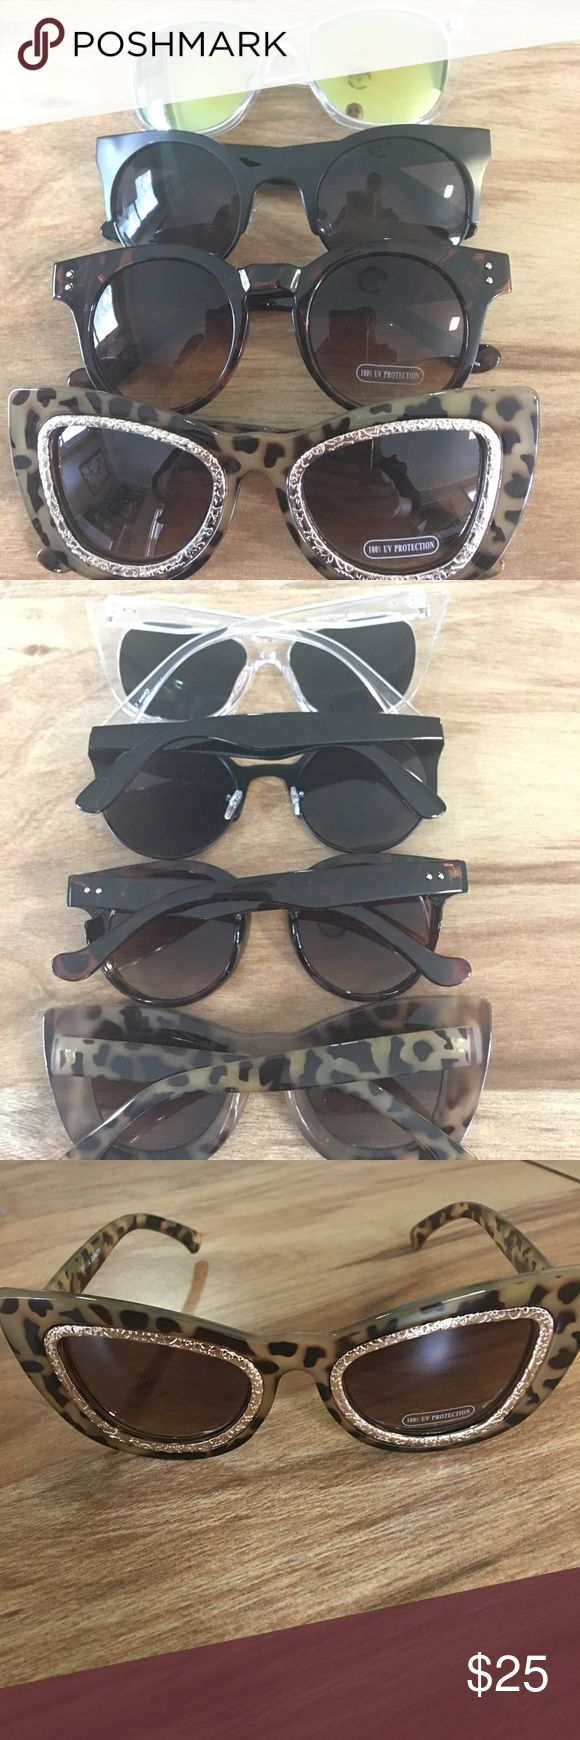 Trendy Cat Eye Frame Sunglass Bundle A bundle of four brand new sunglasses featuring trendy Clear frames, aviator and cat eye frames! Never worn. Accessories Sunglasses